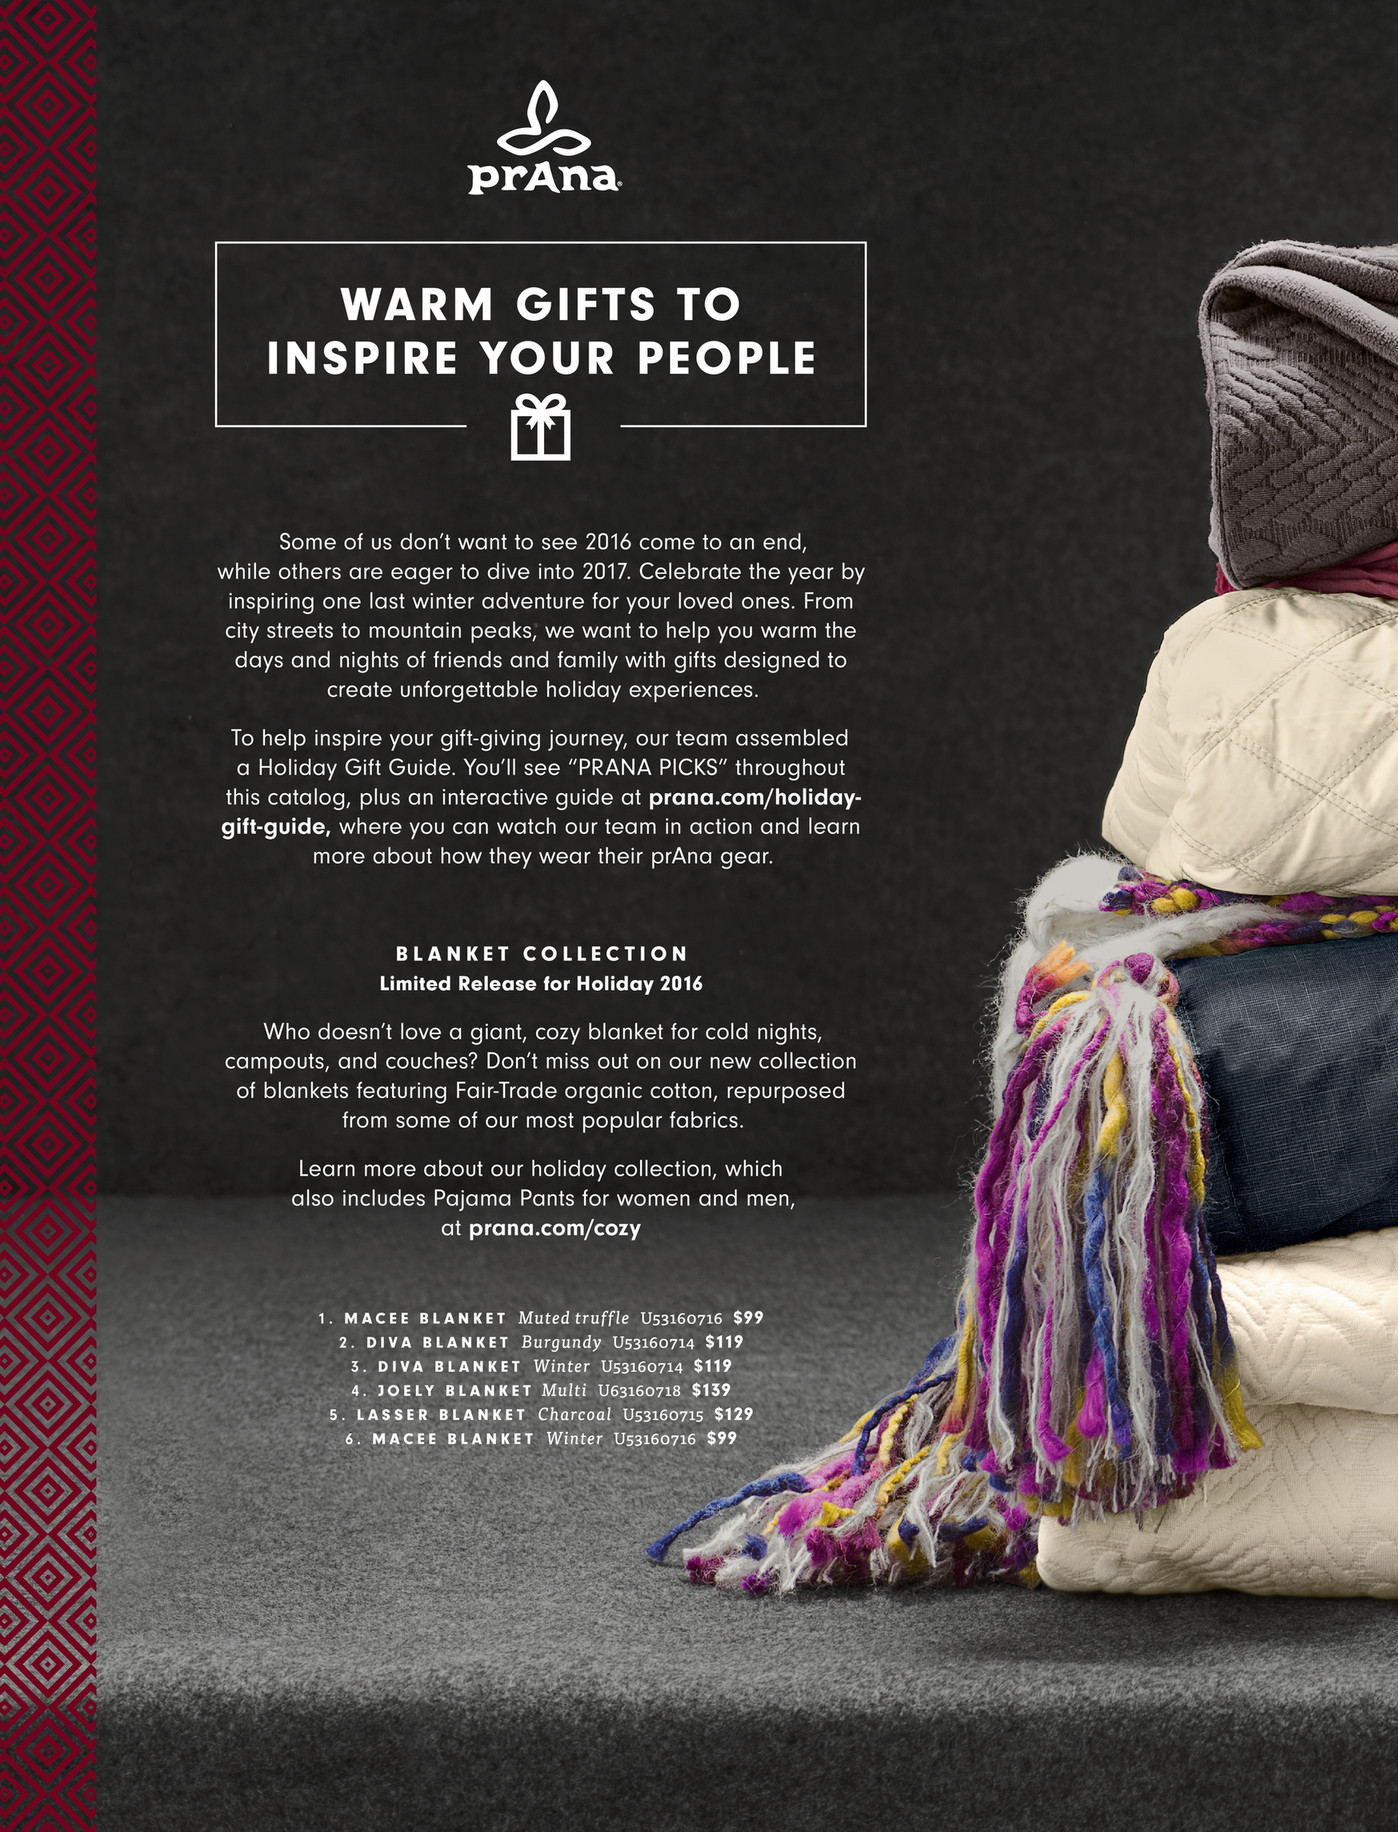 Most Popular Gifts For Women 2016 Part - 38: PrAna - Fall Fashion 2016: Catalog 5 - Warm Gifts For Good People - Page 2-3